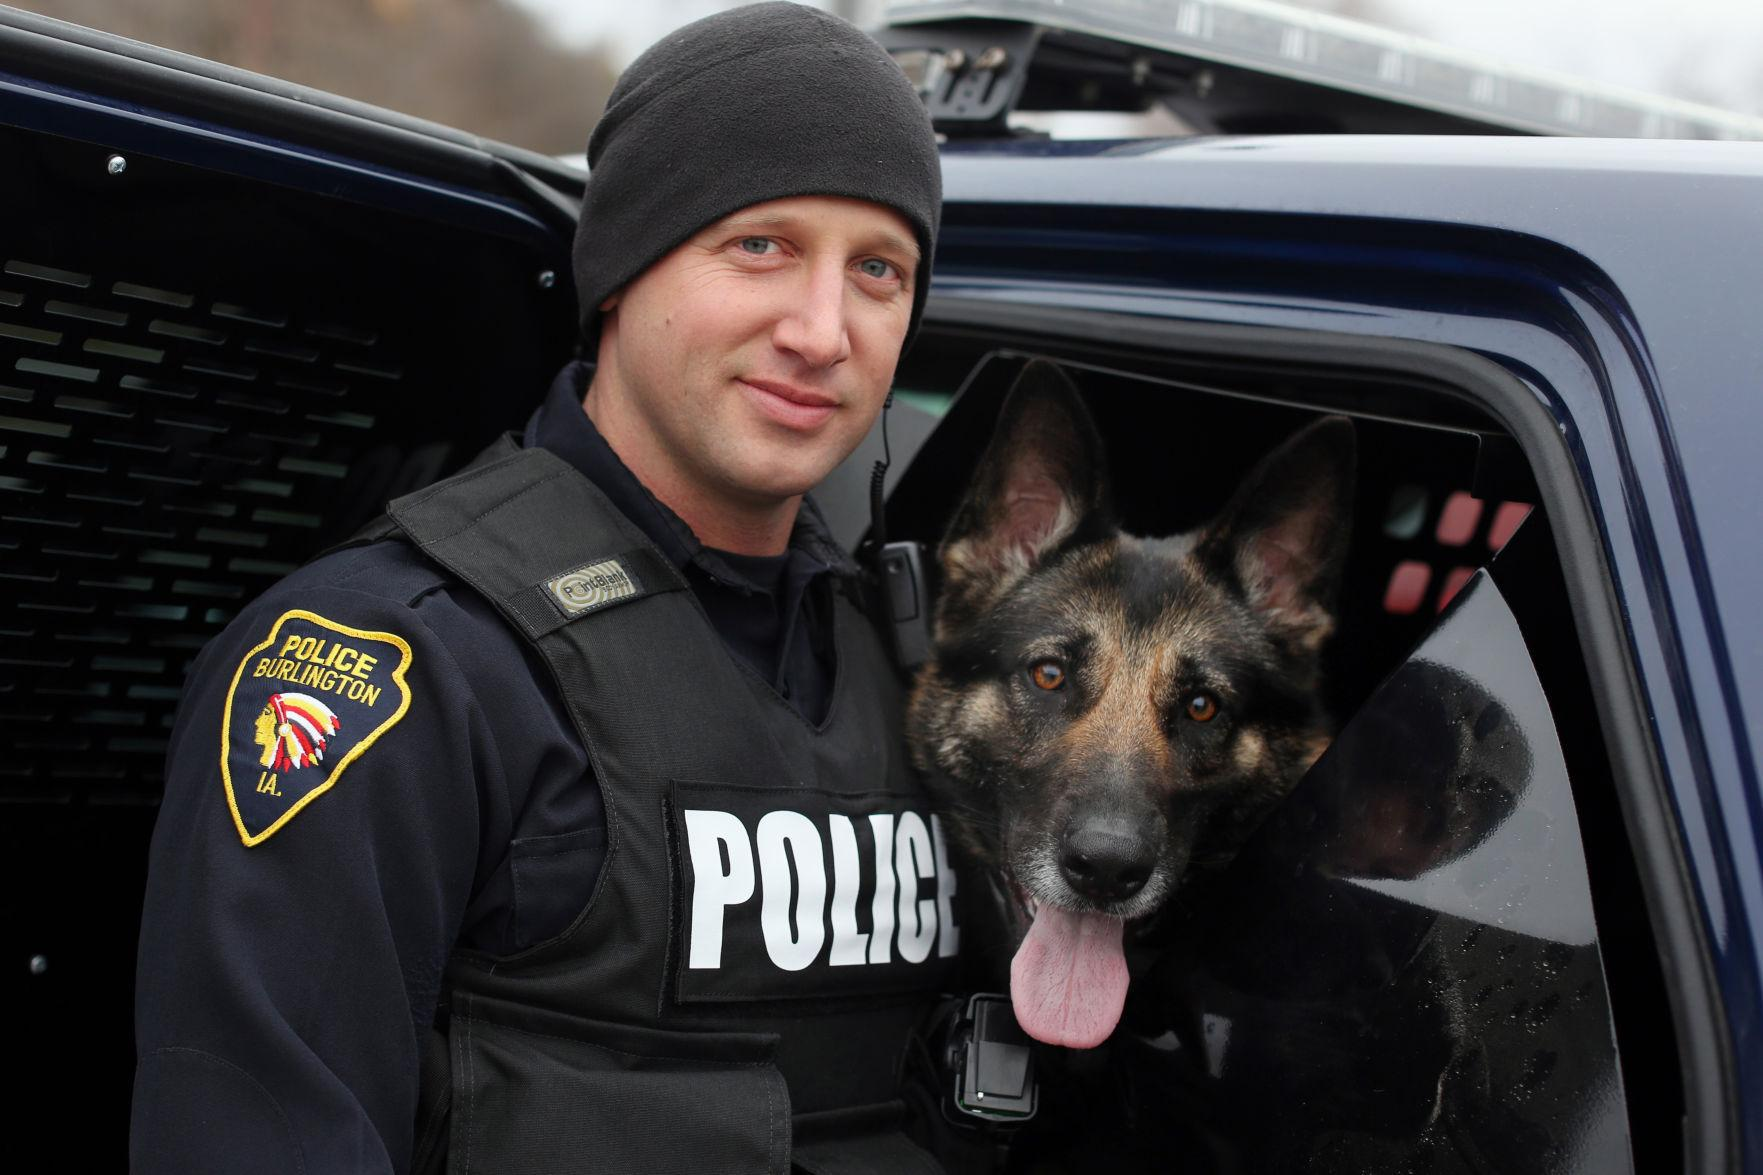 Police Officer with K9